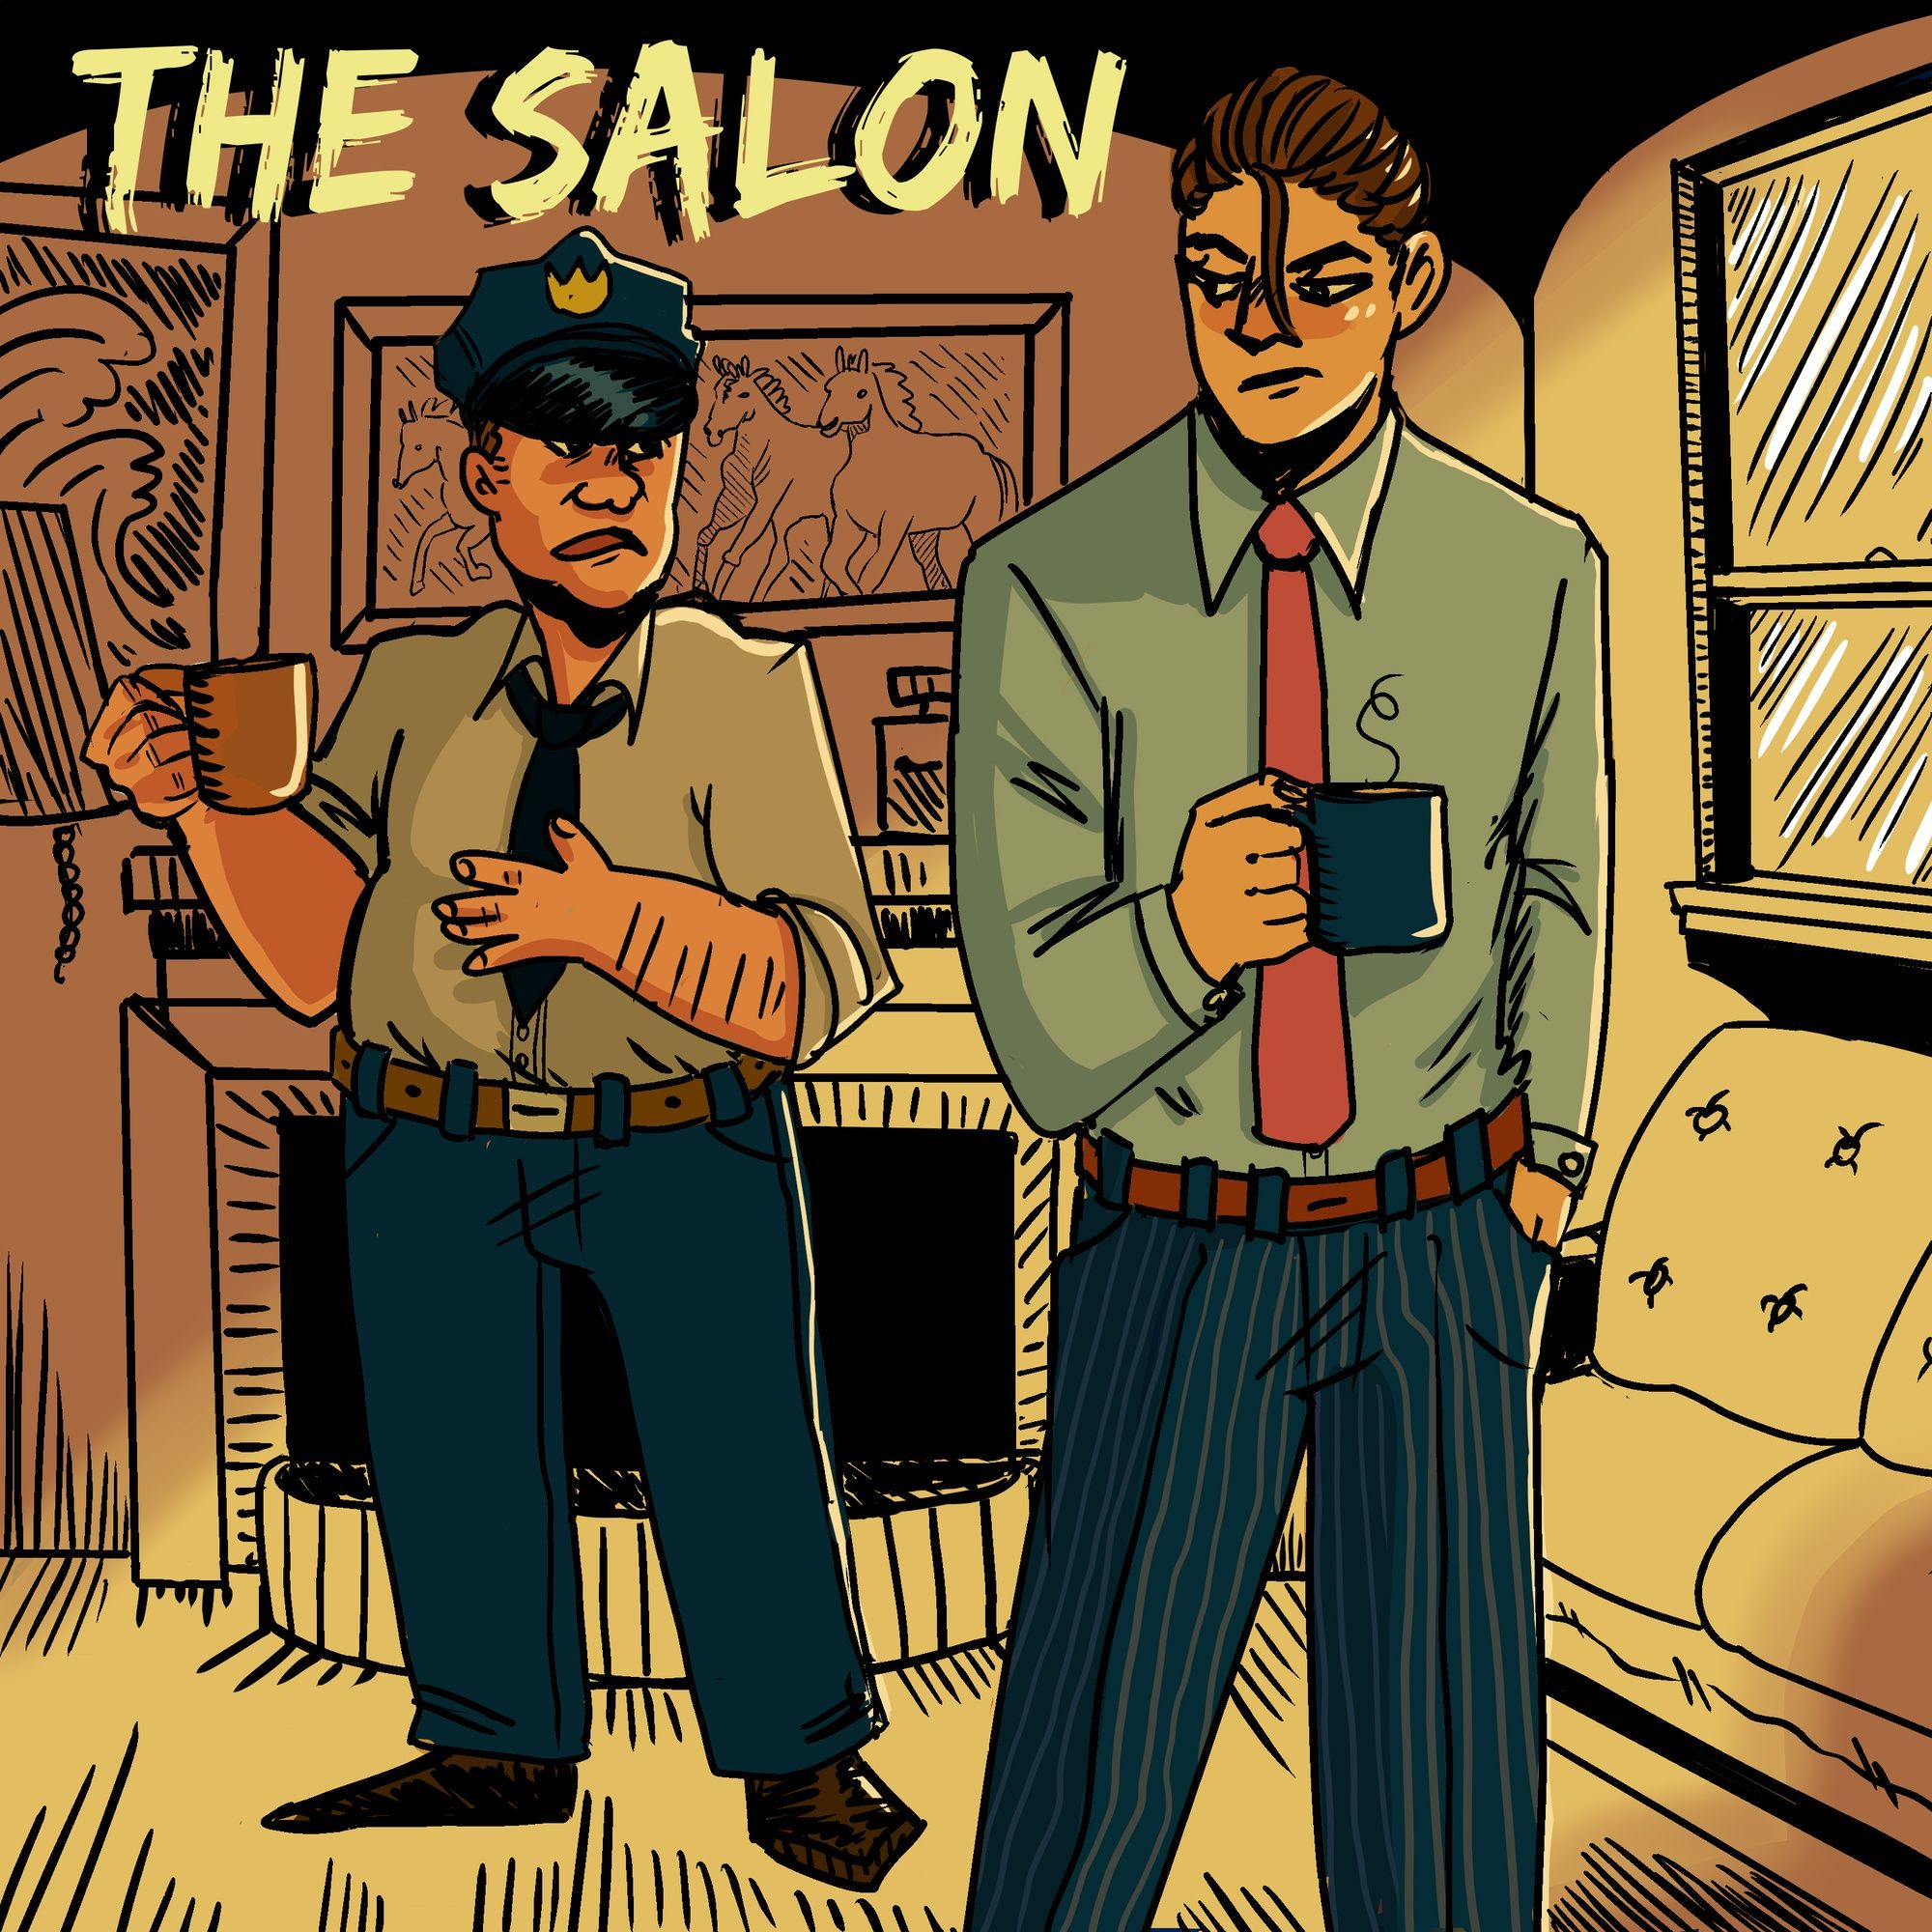 The Salon (Chapter 4 of MITGR)